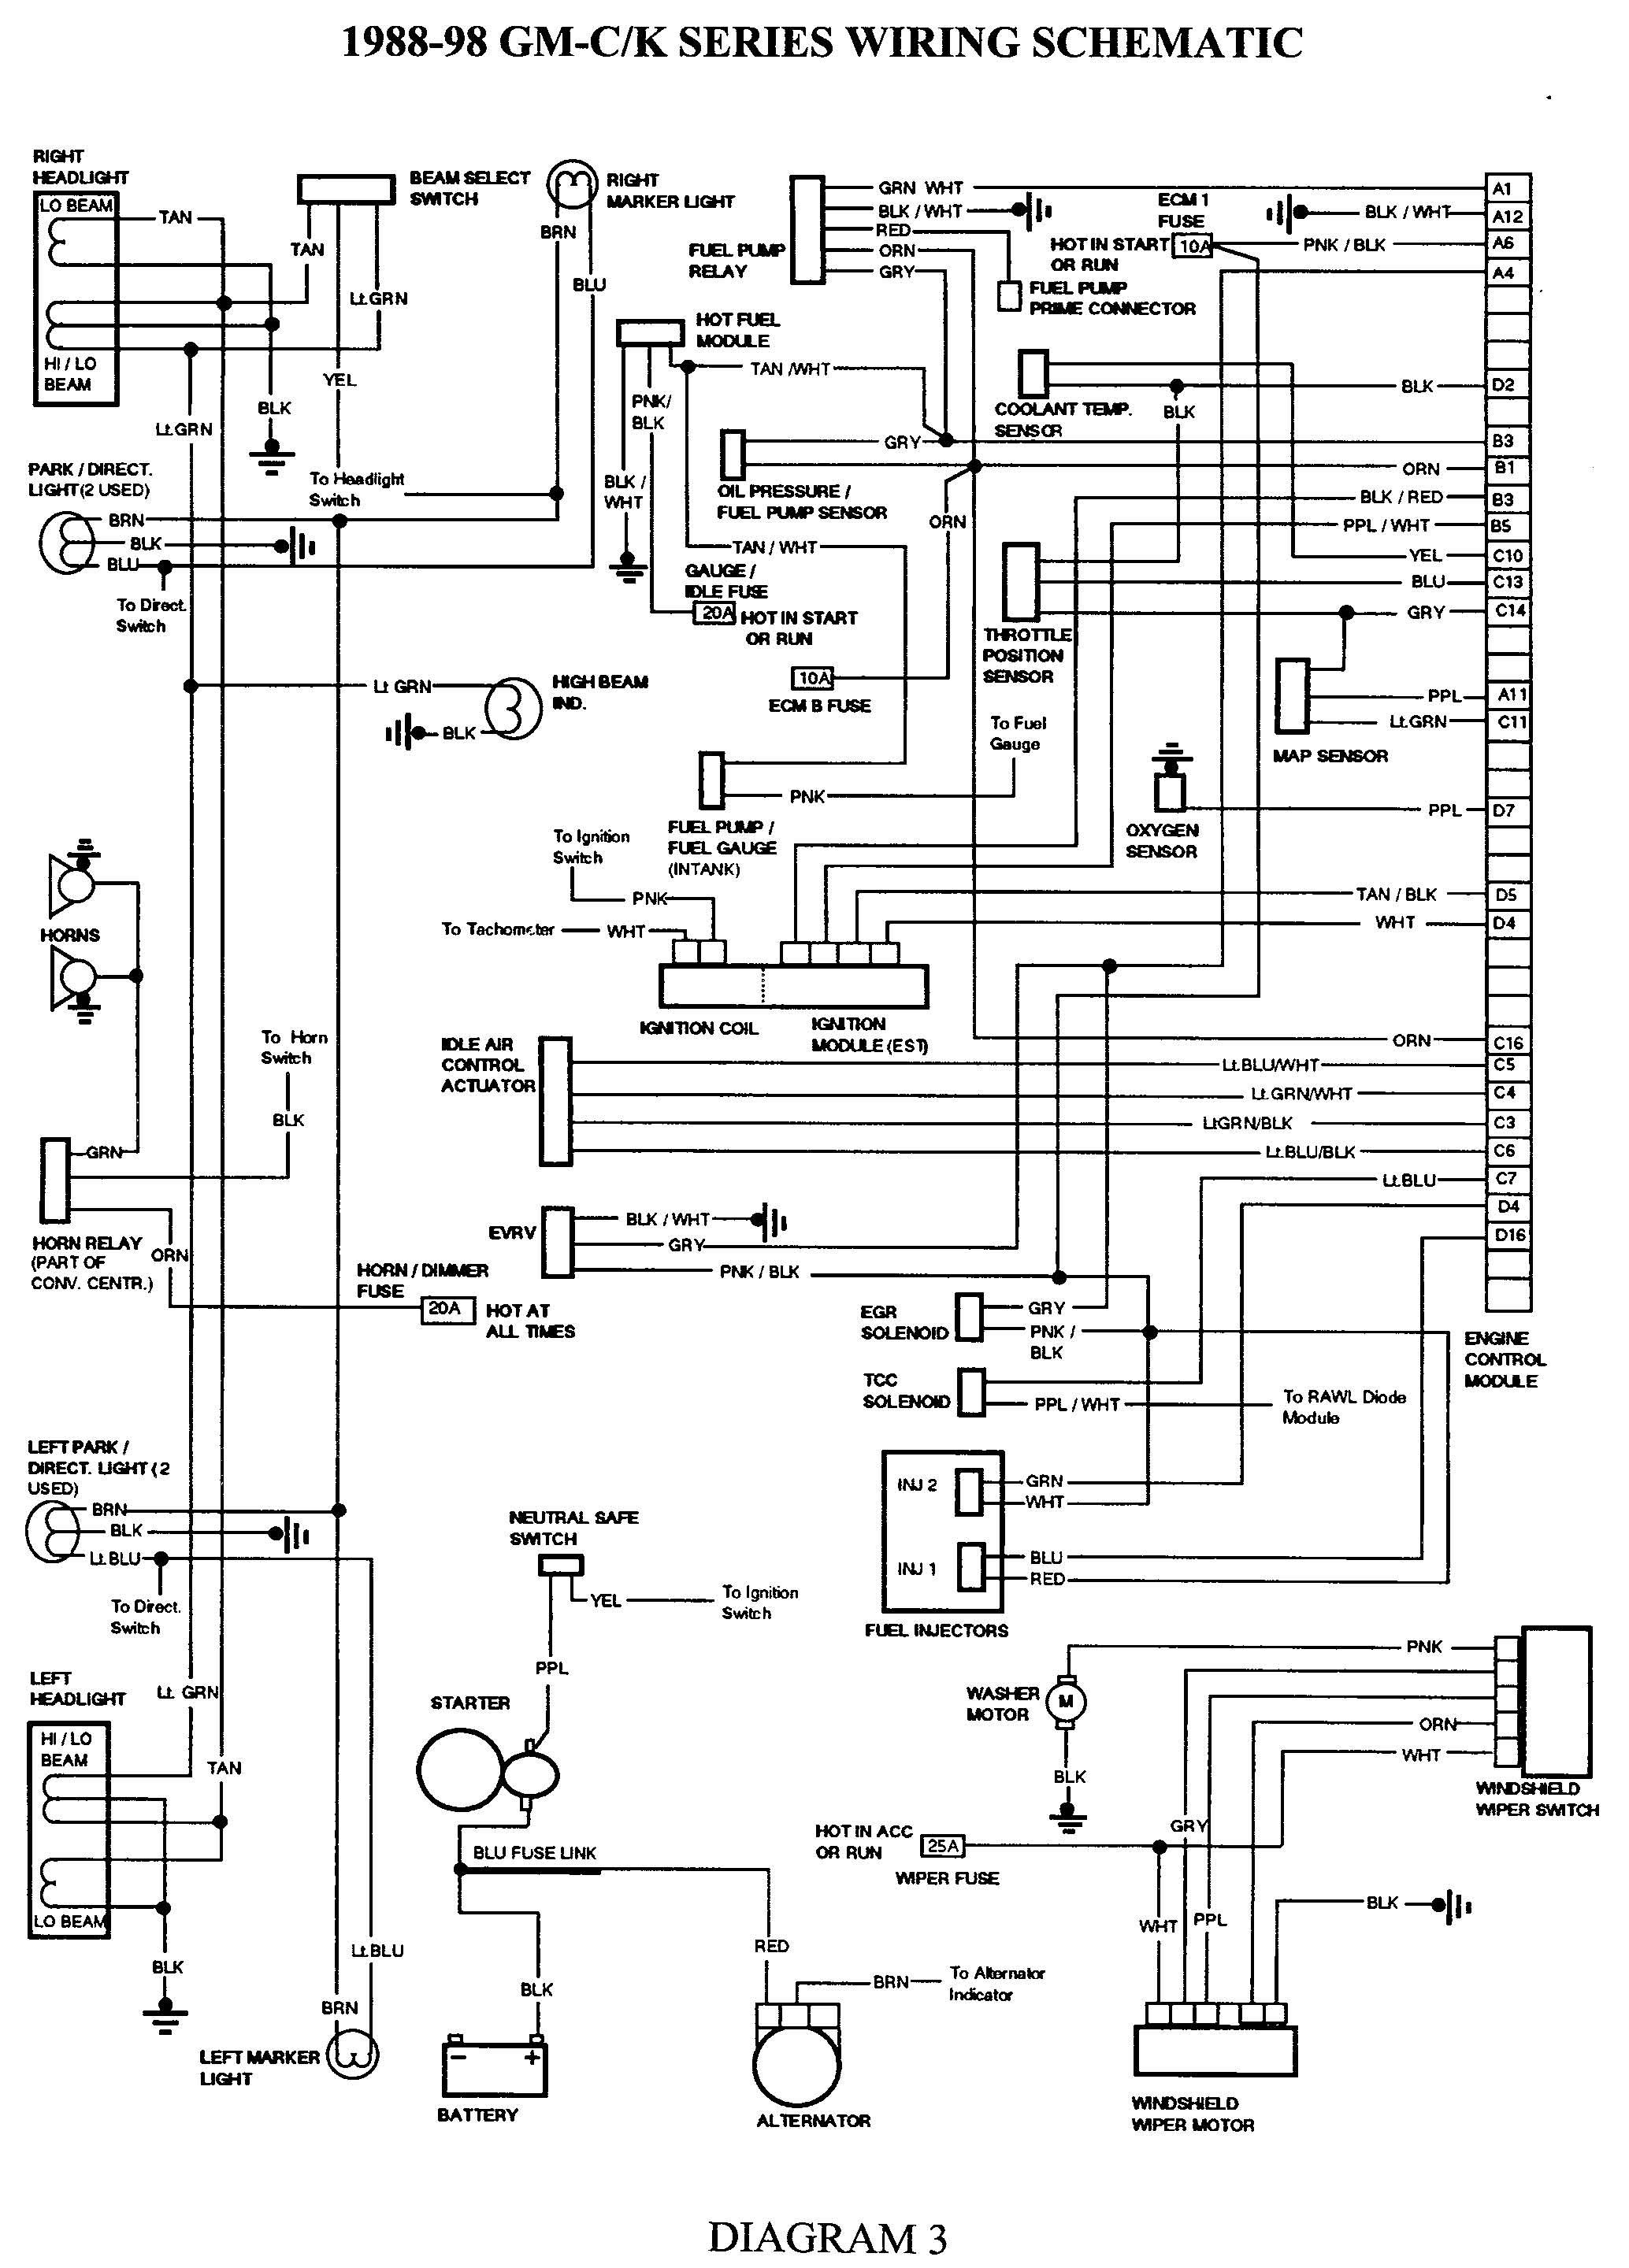 Gmc Truck Wiring Diagrams On Gm Wiring Harness Diagram 88 98 | Kc - 5.7 Vortec Wiring Harness Diagram